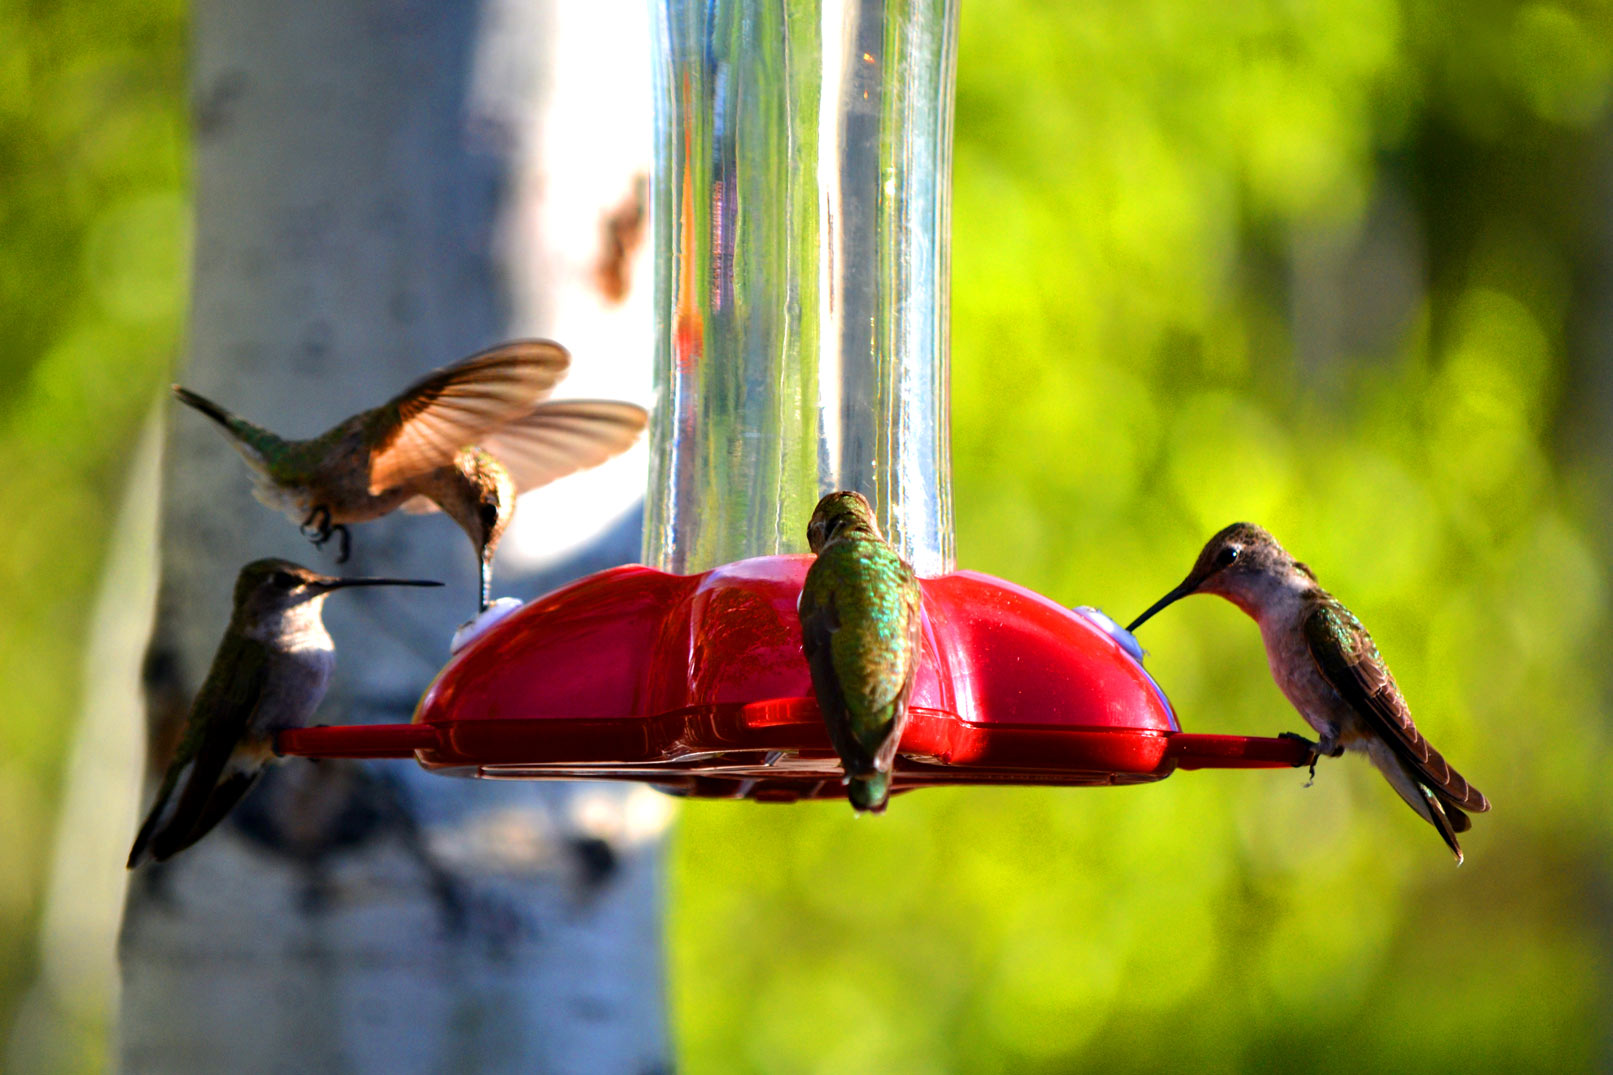 Collection performing daily wondrous hummingbirds by techgnotic on hummingbirds by loxymcd biocorpaavc Gallery